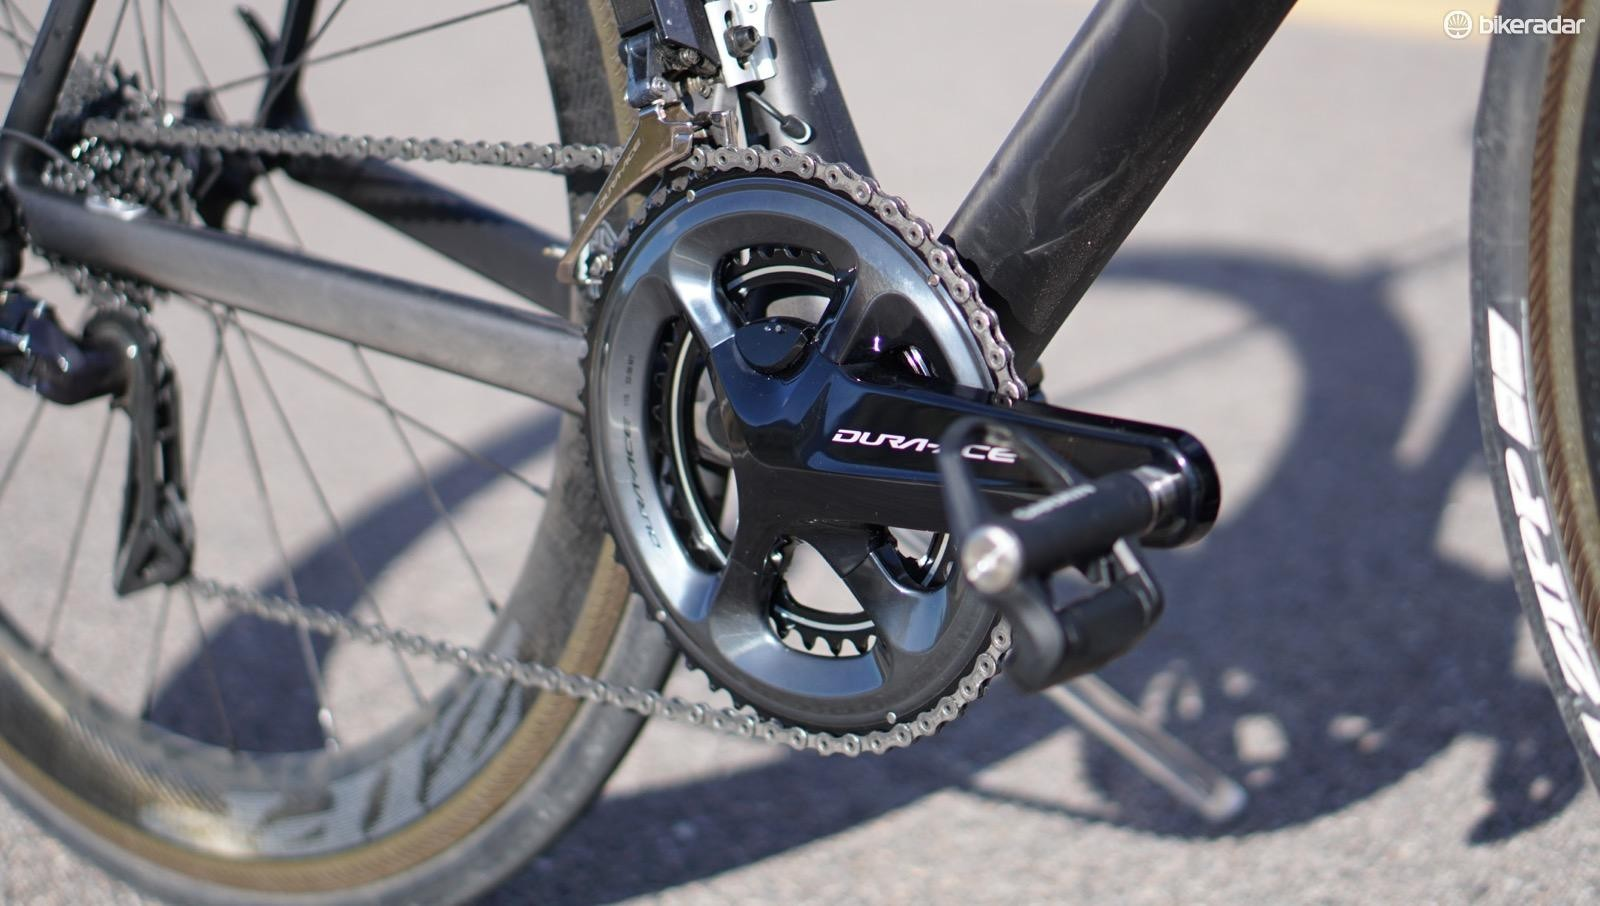 Shimano's Dura-Ace power meter adds 70g to a 9100 crankset